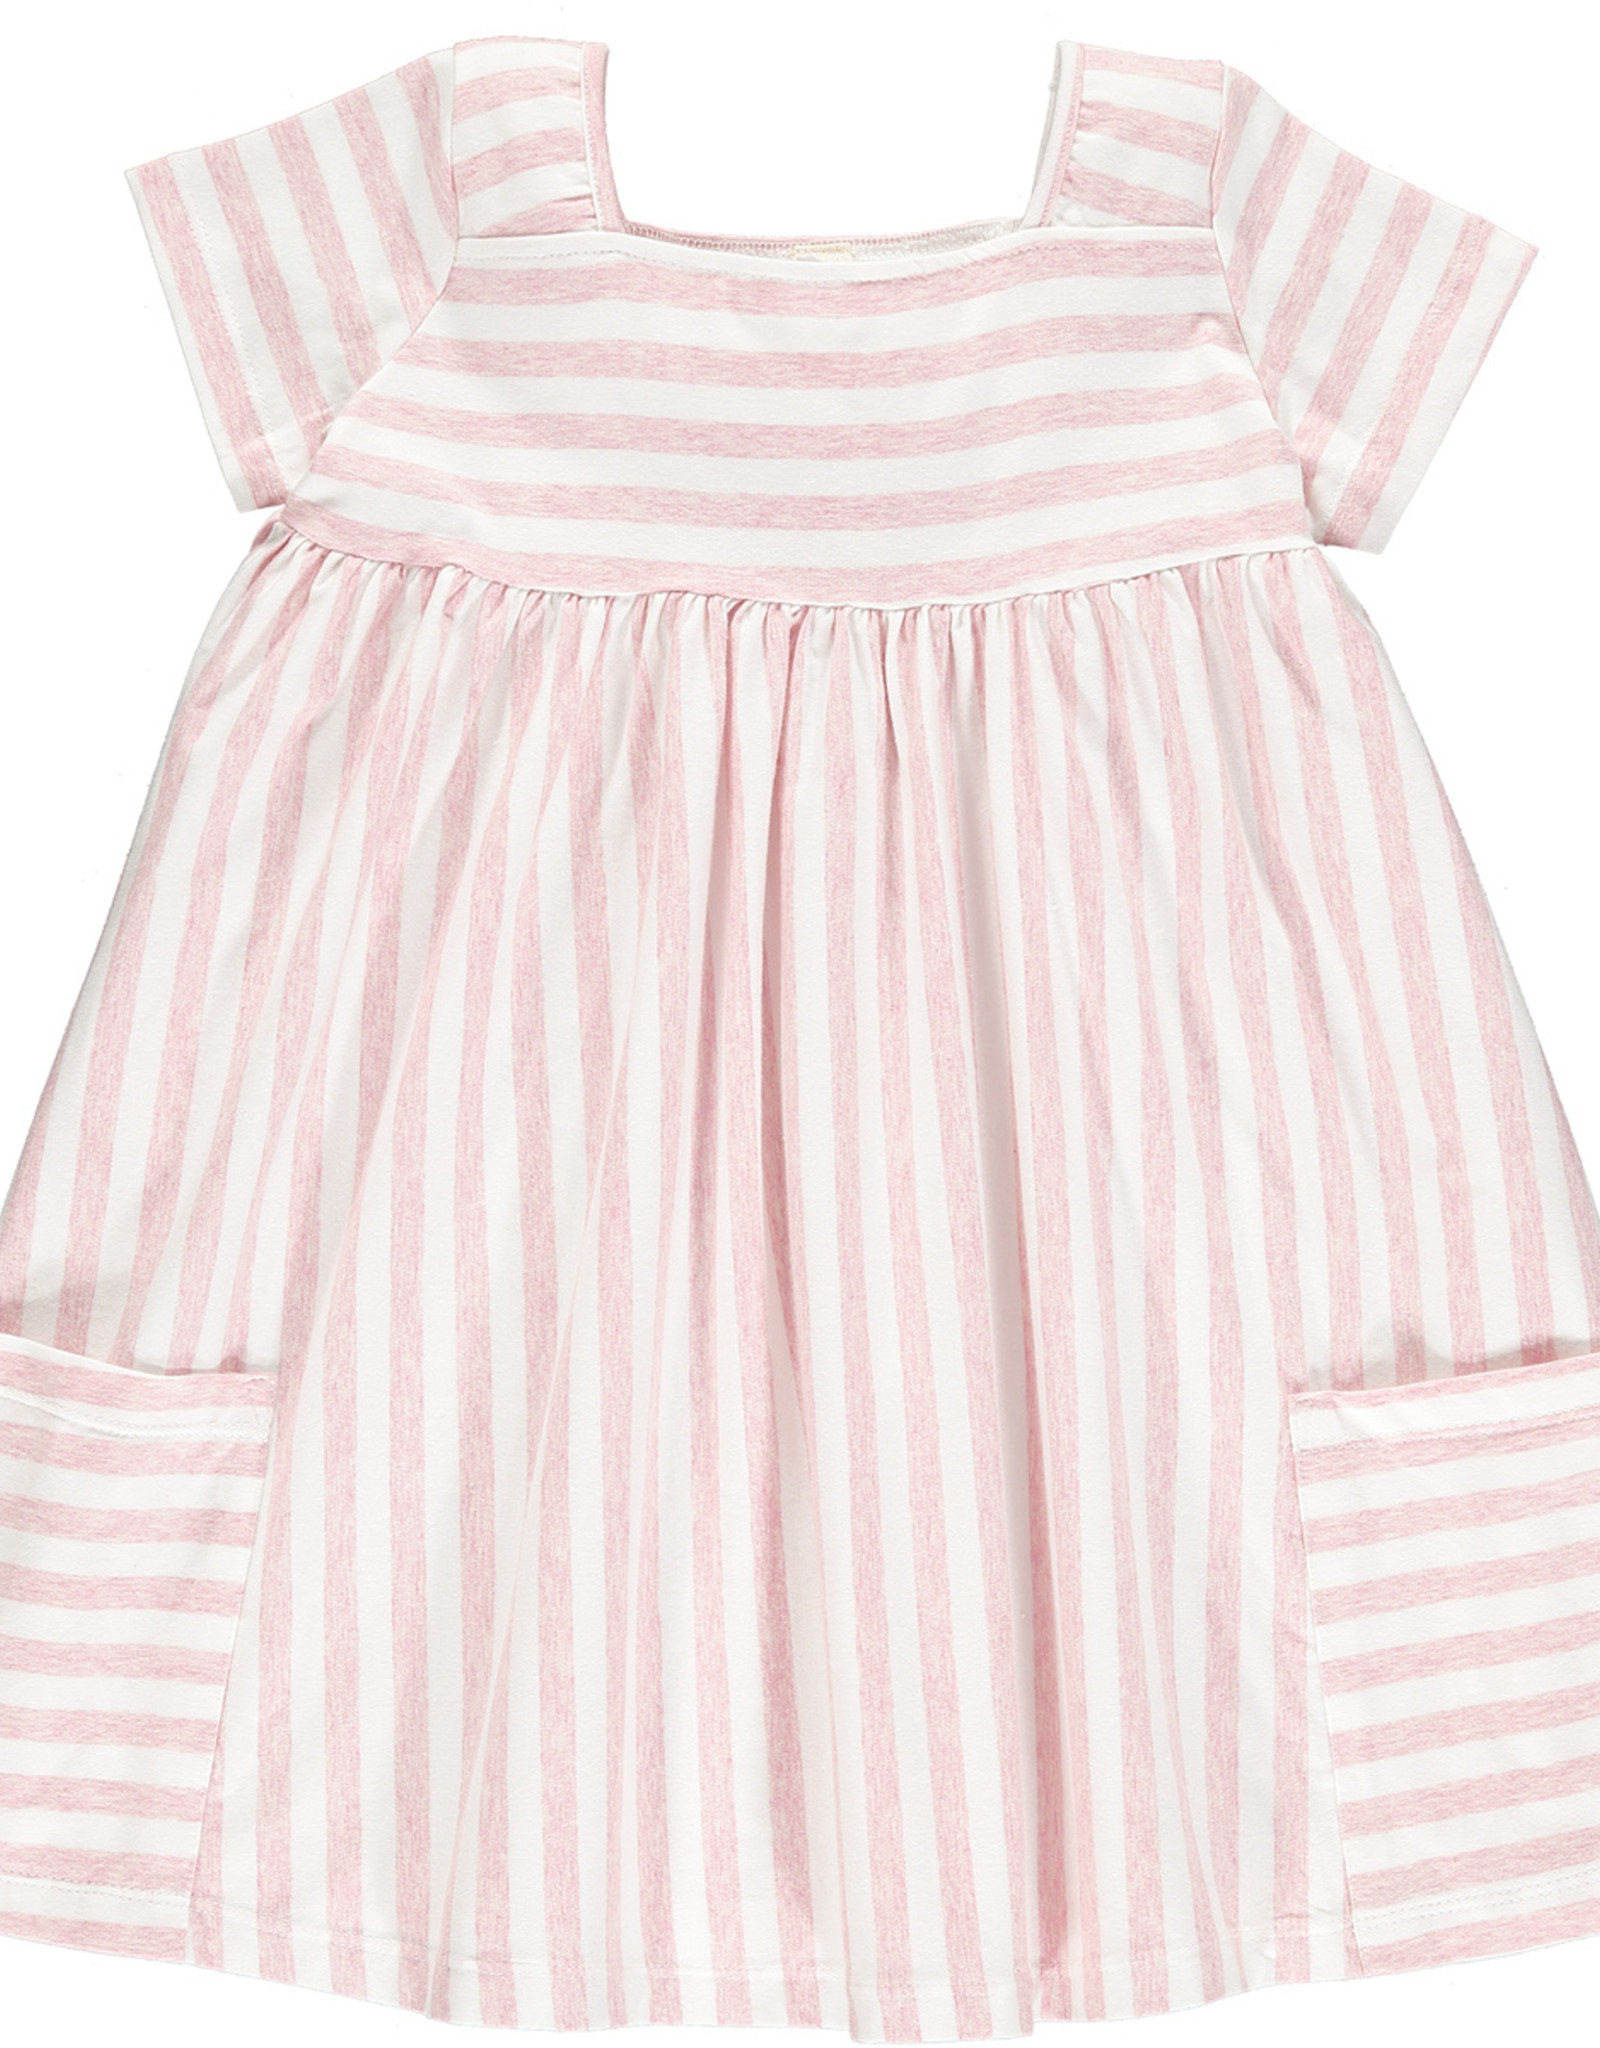 Vignette Pink Rylie Dress